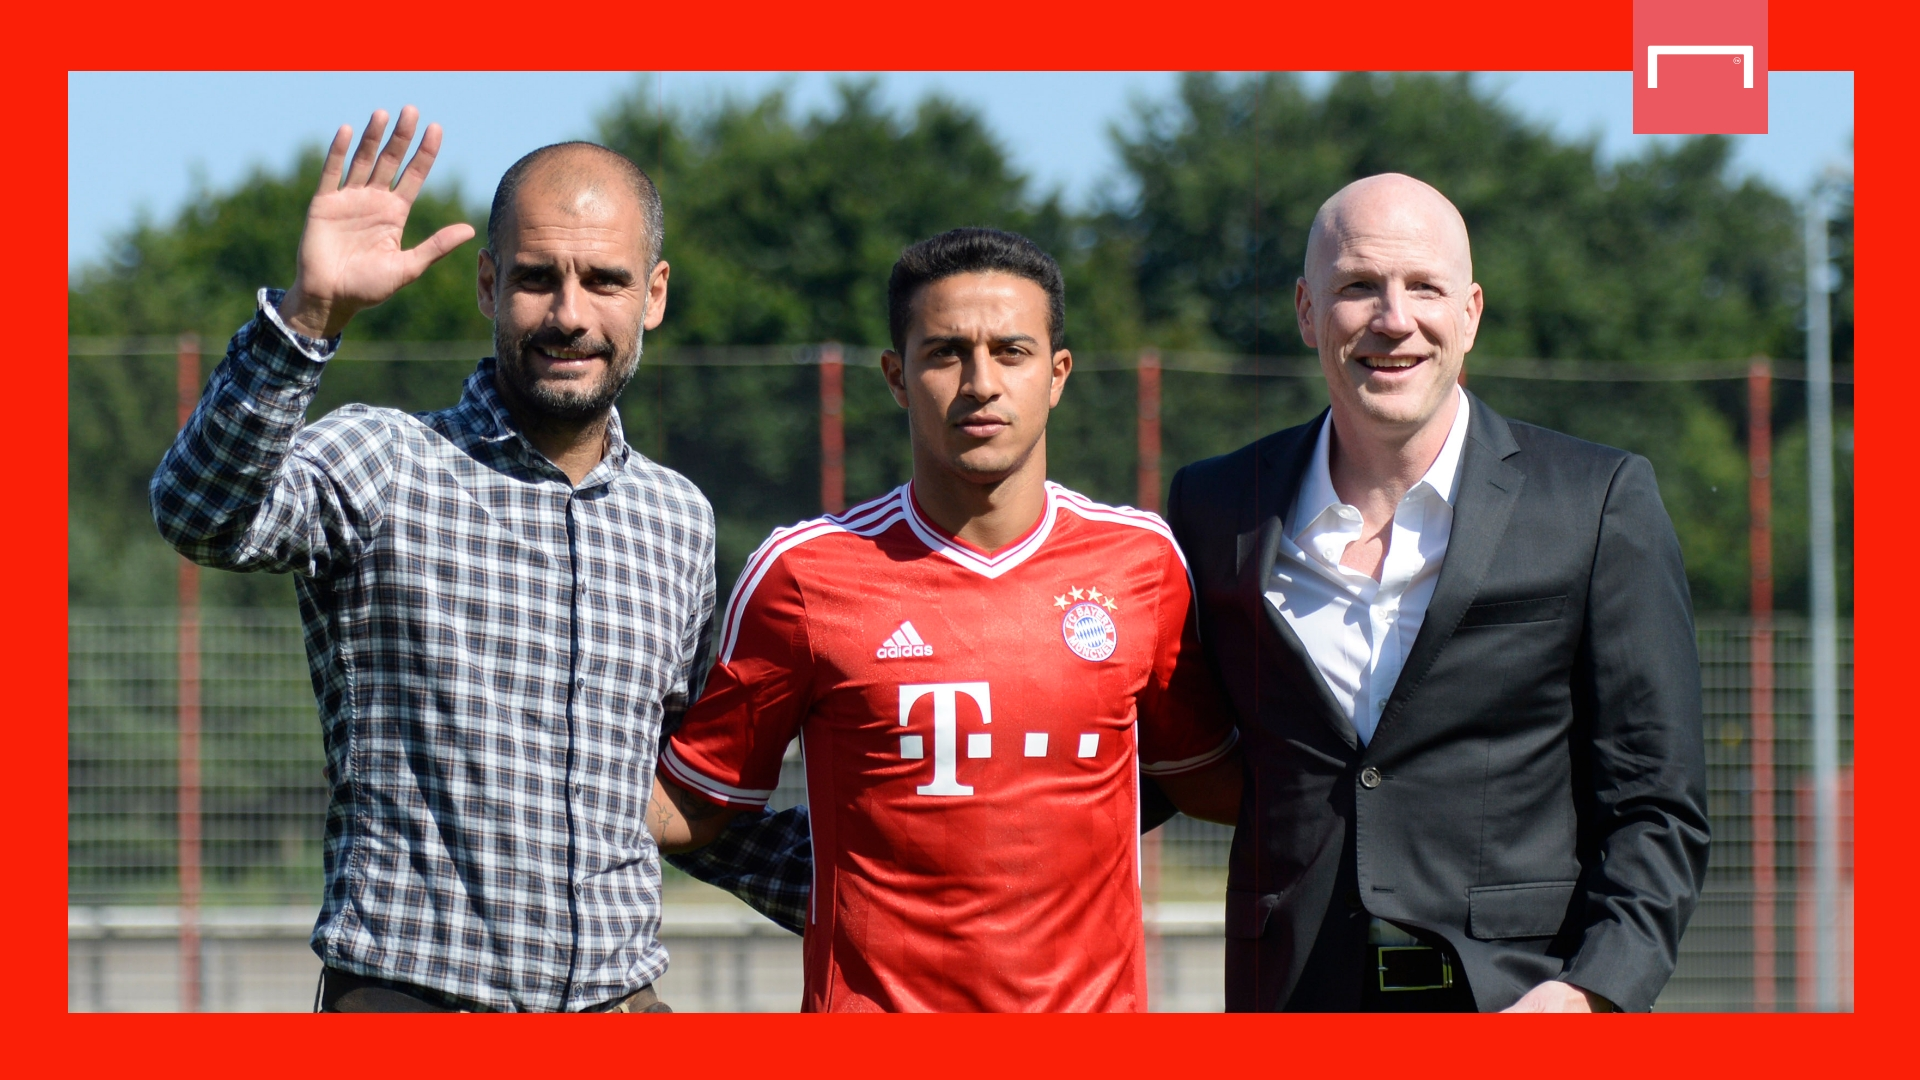 Seven years in the making: How Liverpool missed out on Thiago in 2013